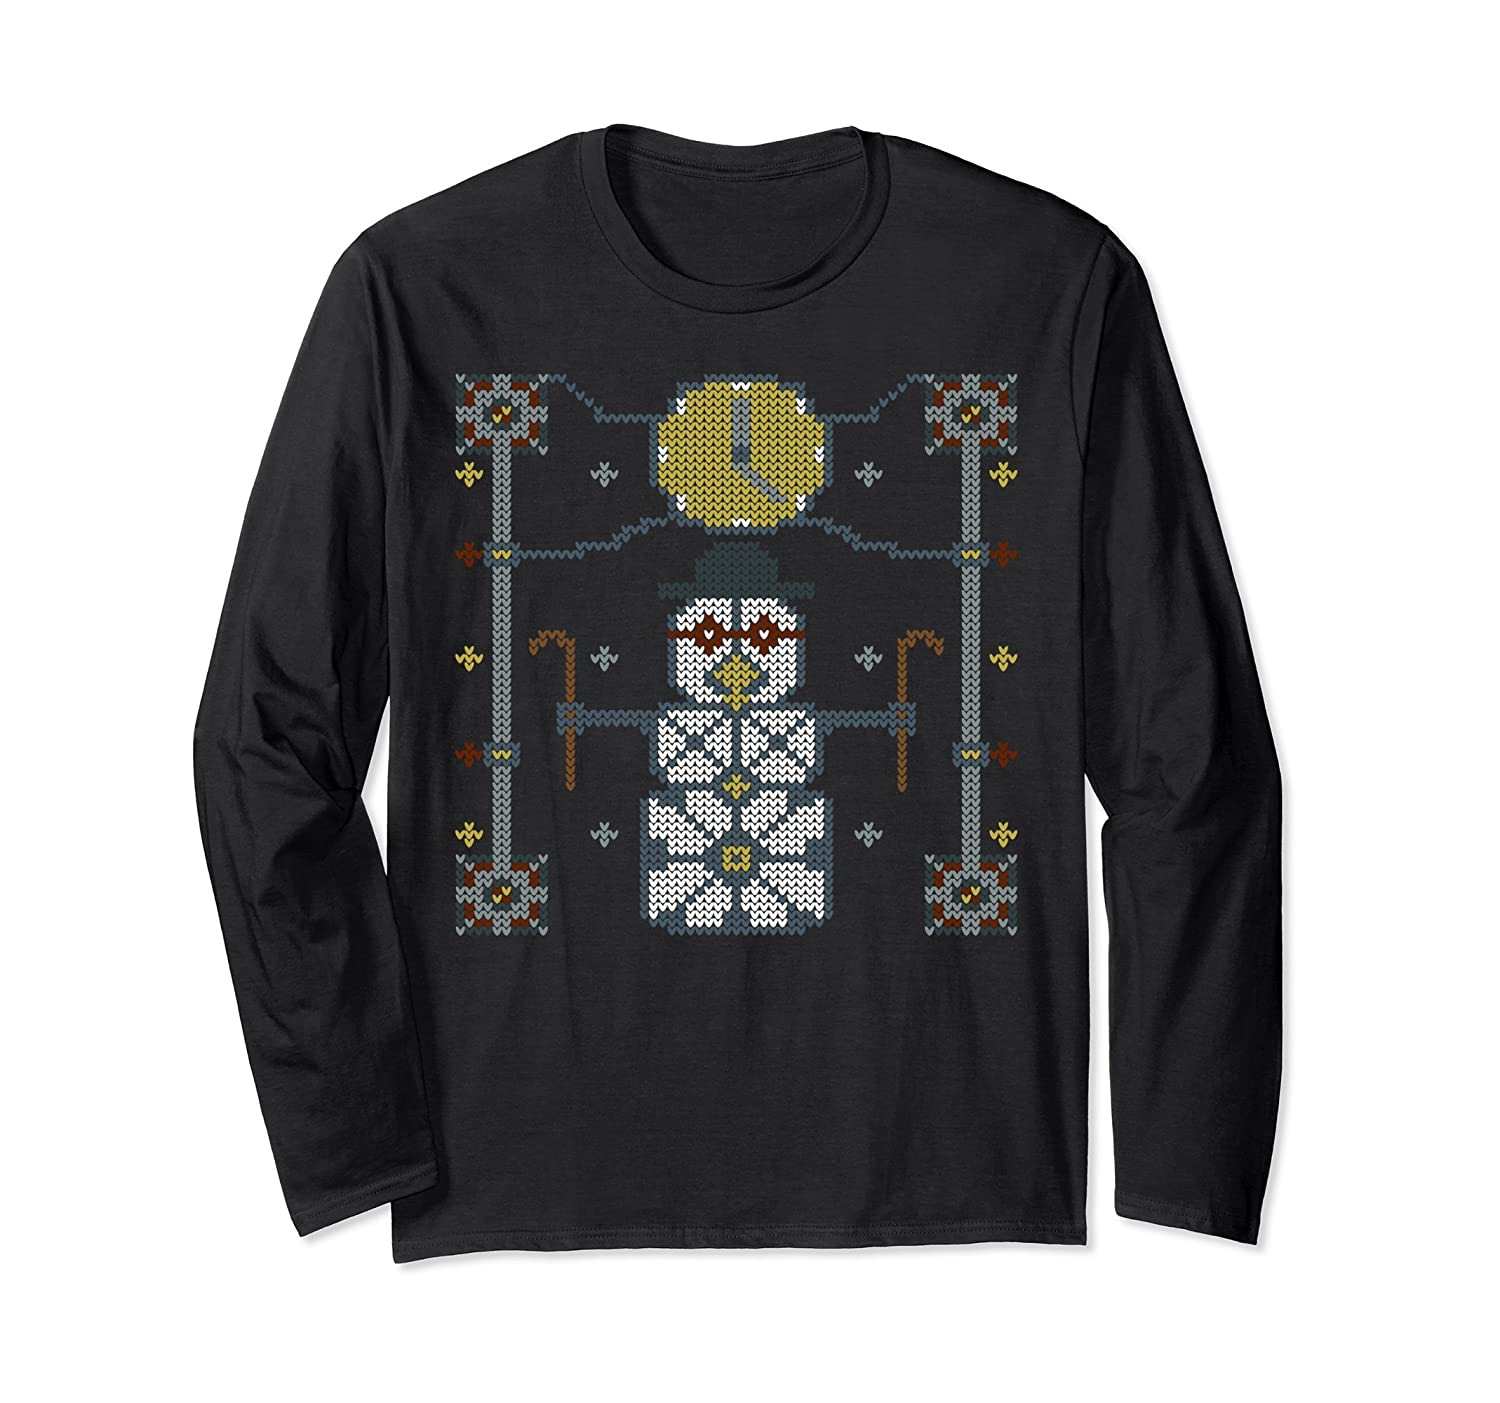 Steampunk Time Machine Snowman Ugly Christmas Sweater TShirt